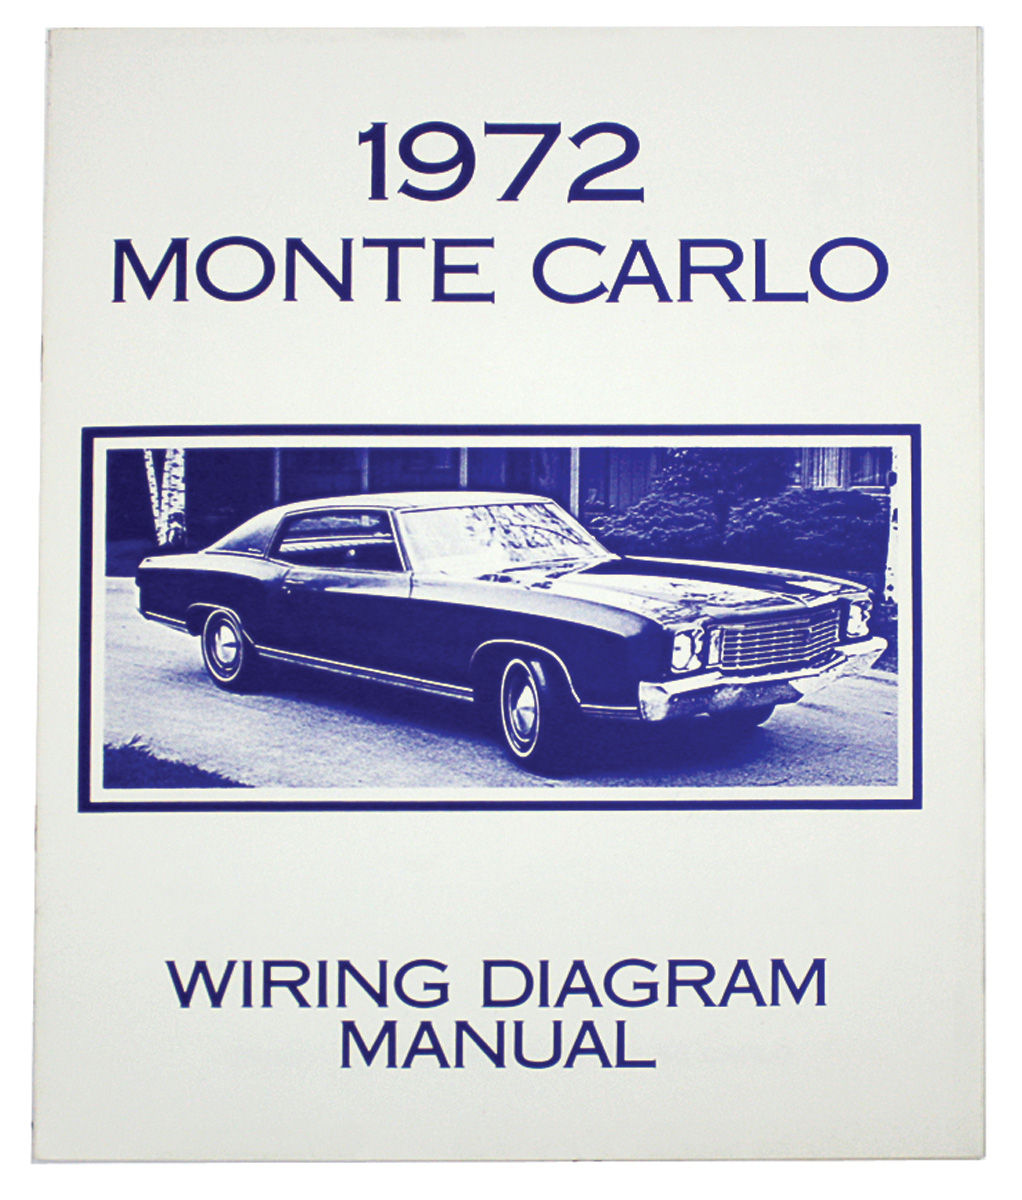 Monte Carlo Wiring Diagram Wiring Diagram Approval A Approval A Zaafran It